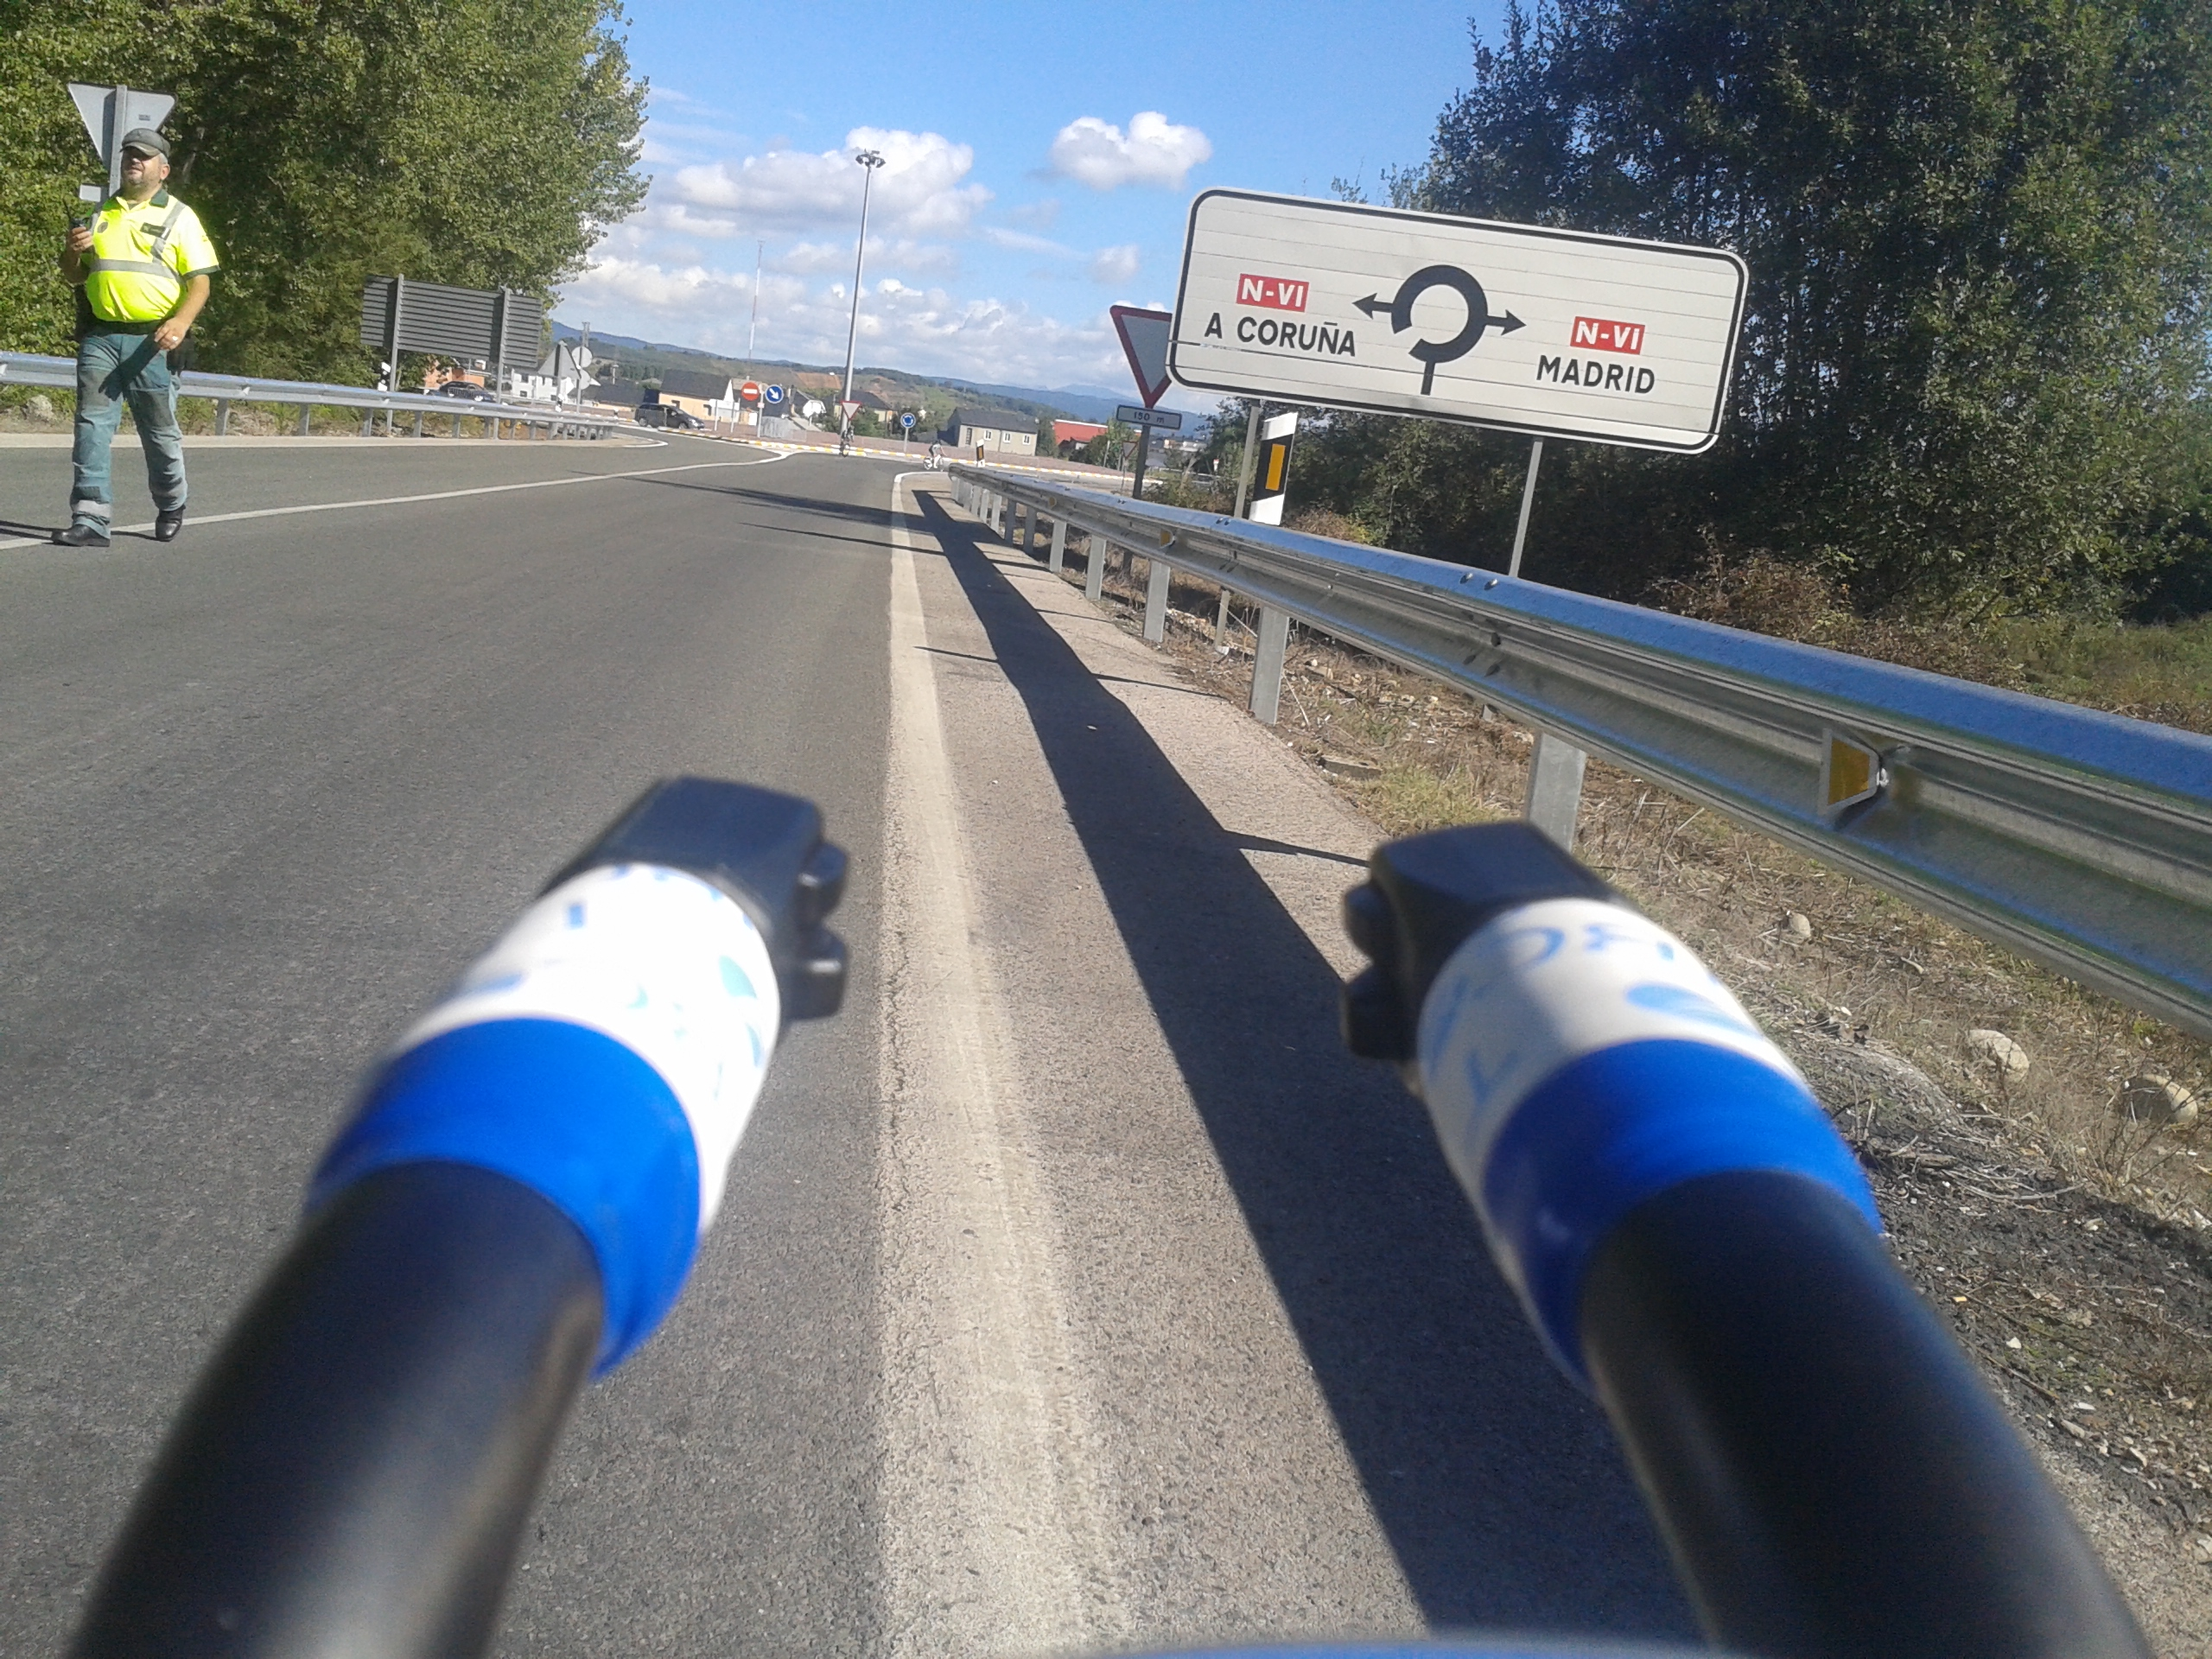 Photo: You know you're #livingthedream when you see signs to Madrid on your training ride.